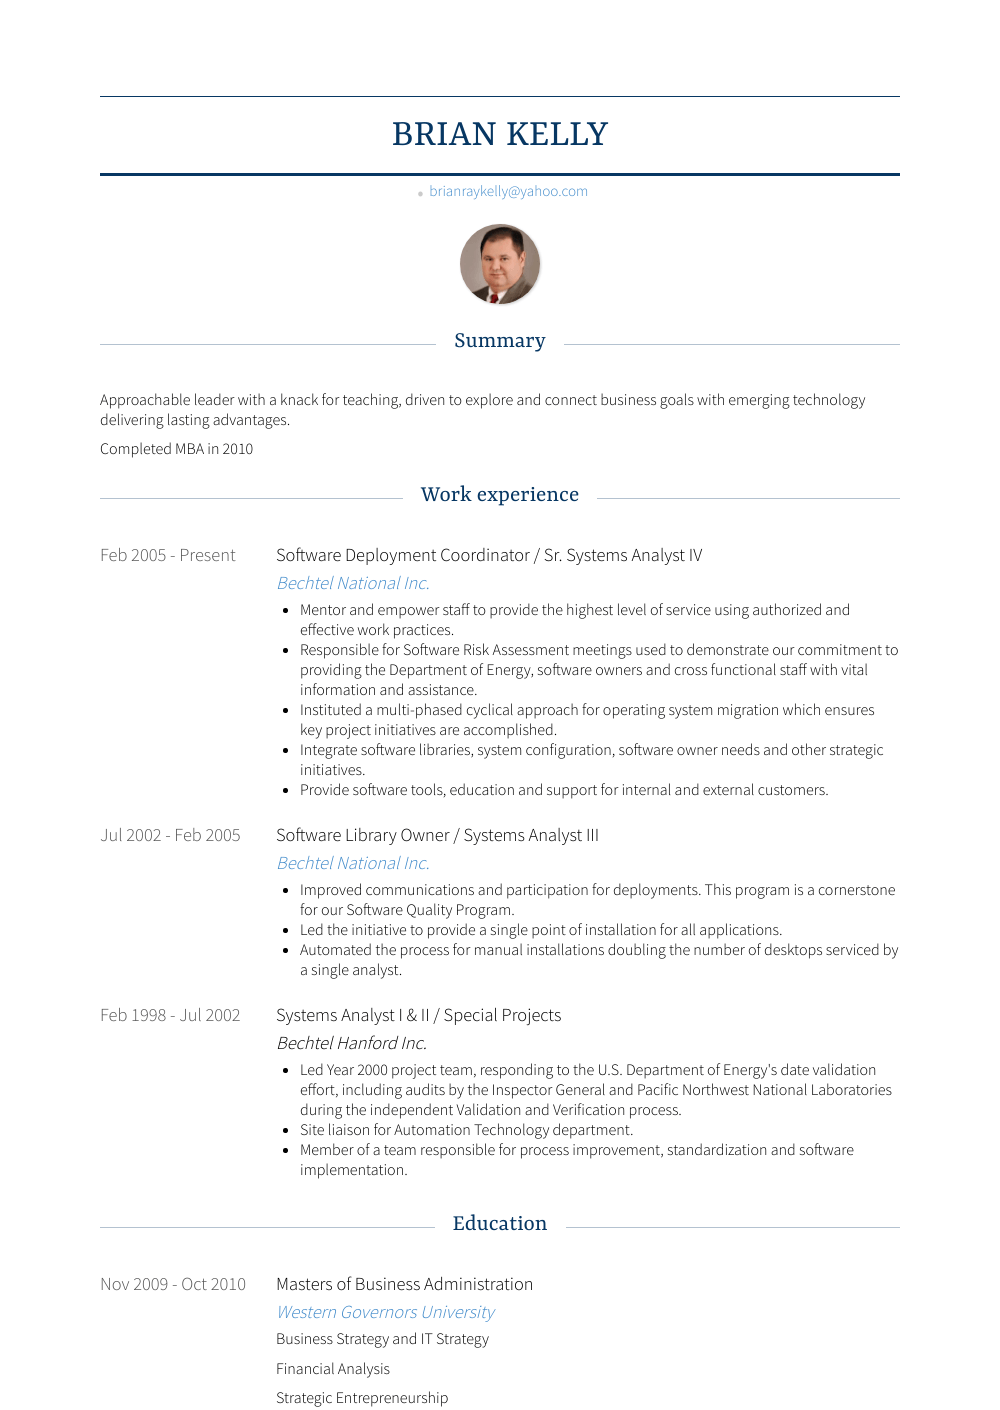 Software Deployment Coordinator / Sr. Systems Analyst Iv Resume Sample and Template